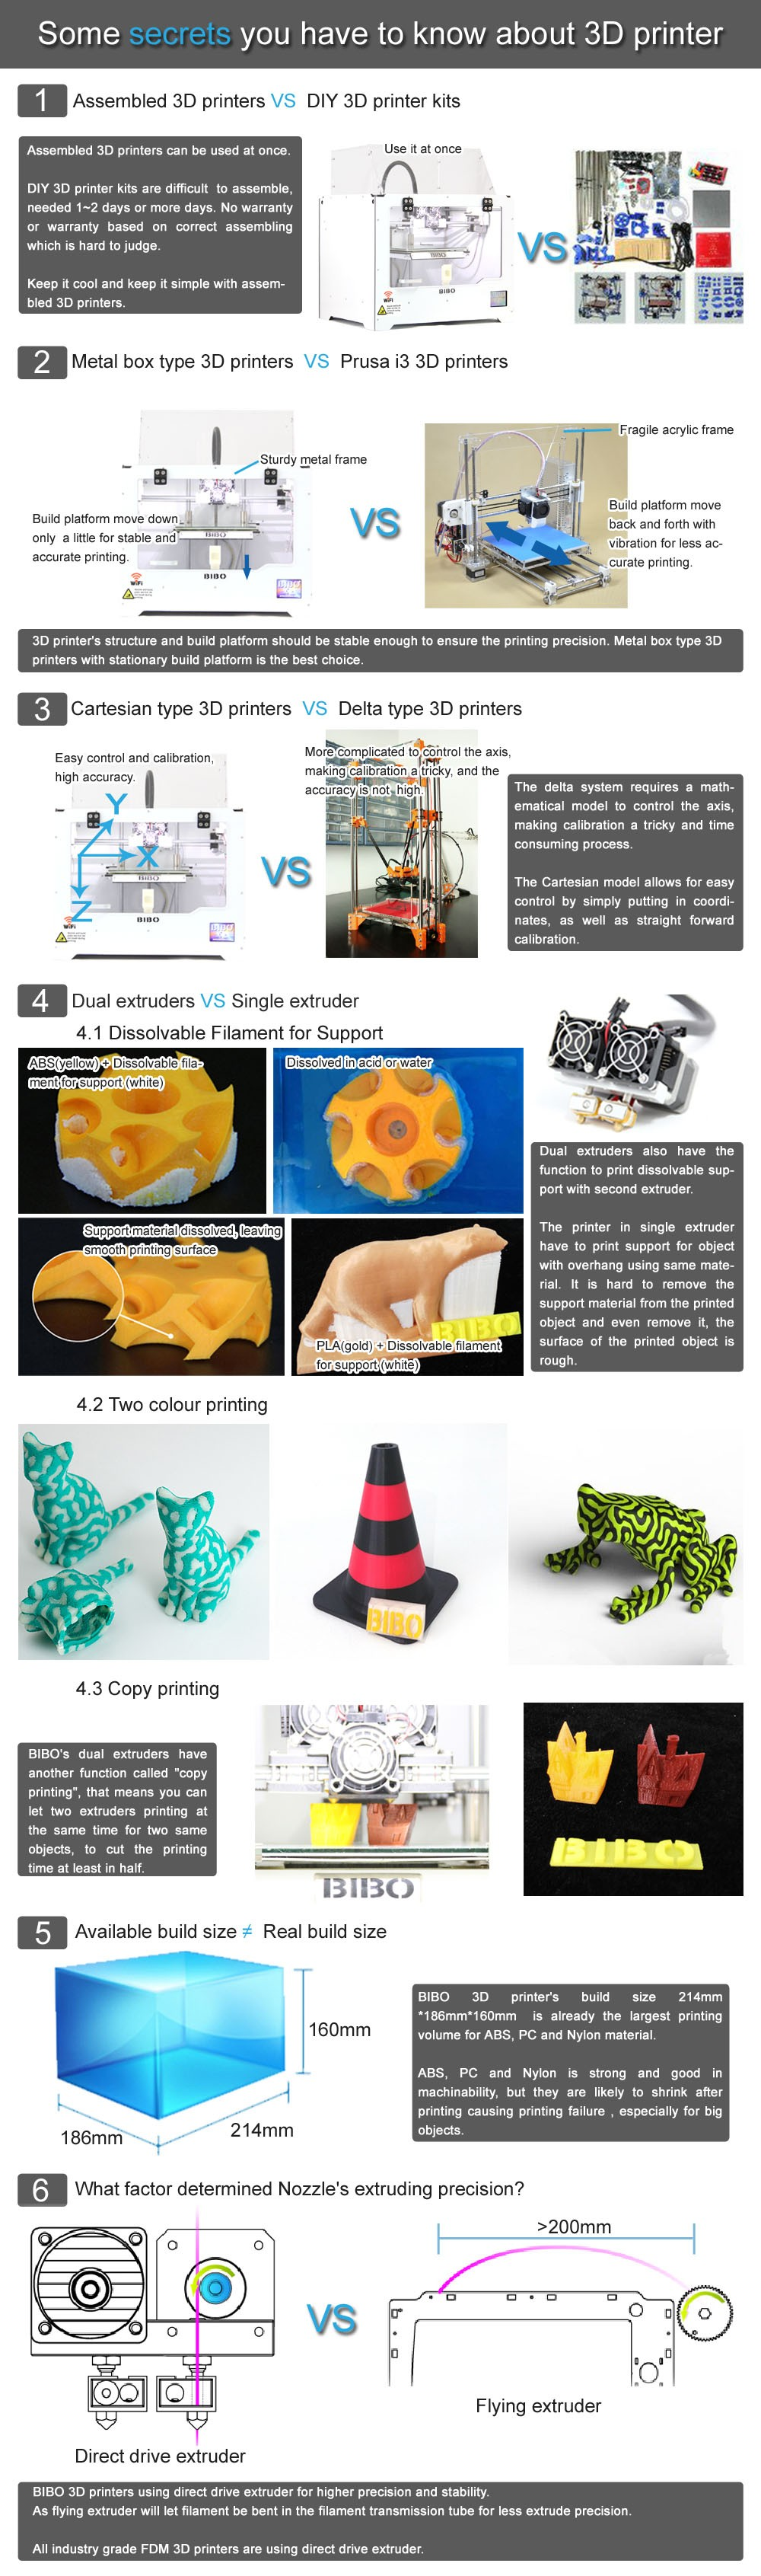 [BIBO]secrets for 3D printer